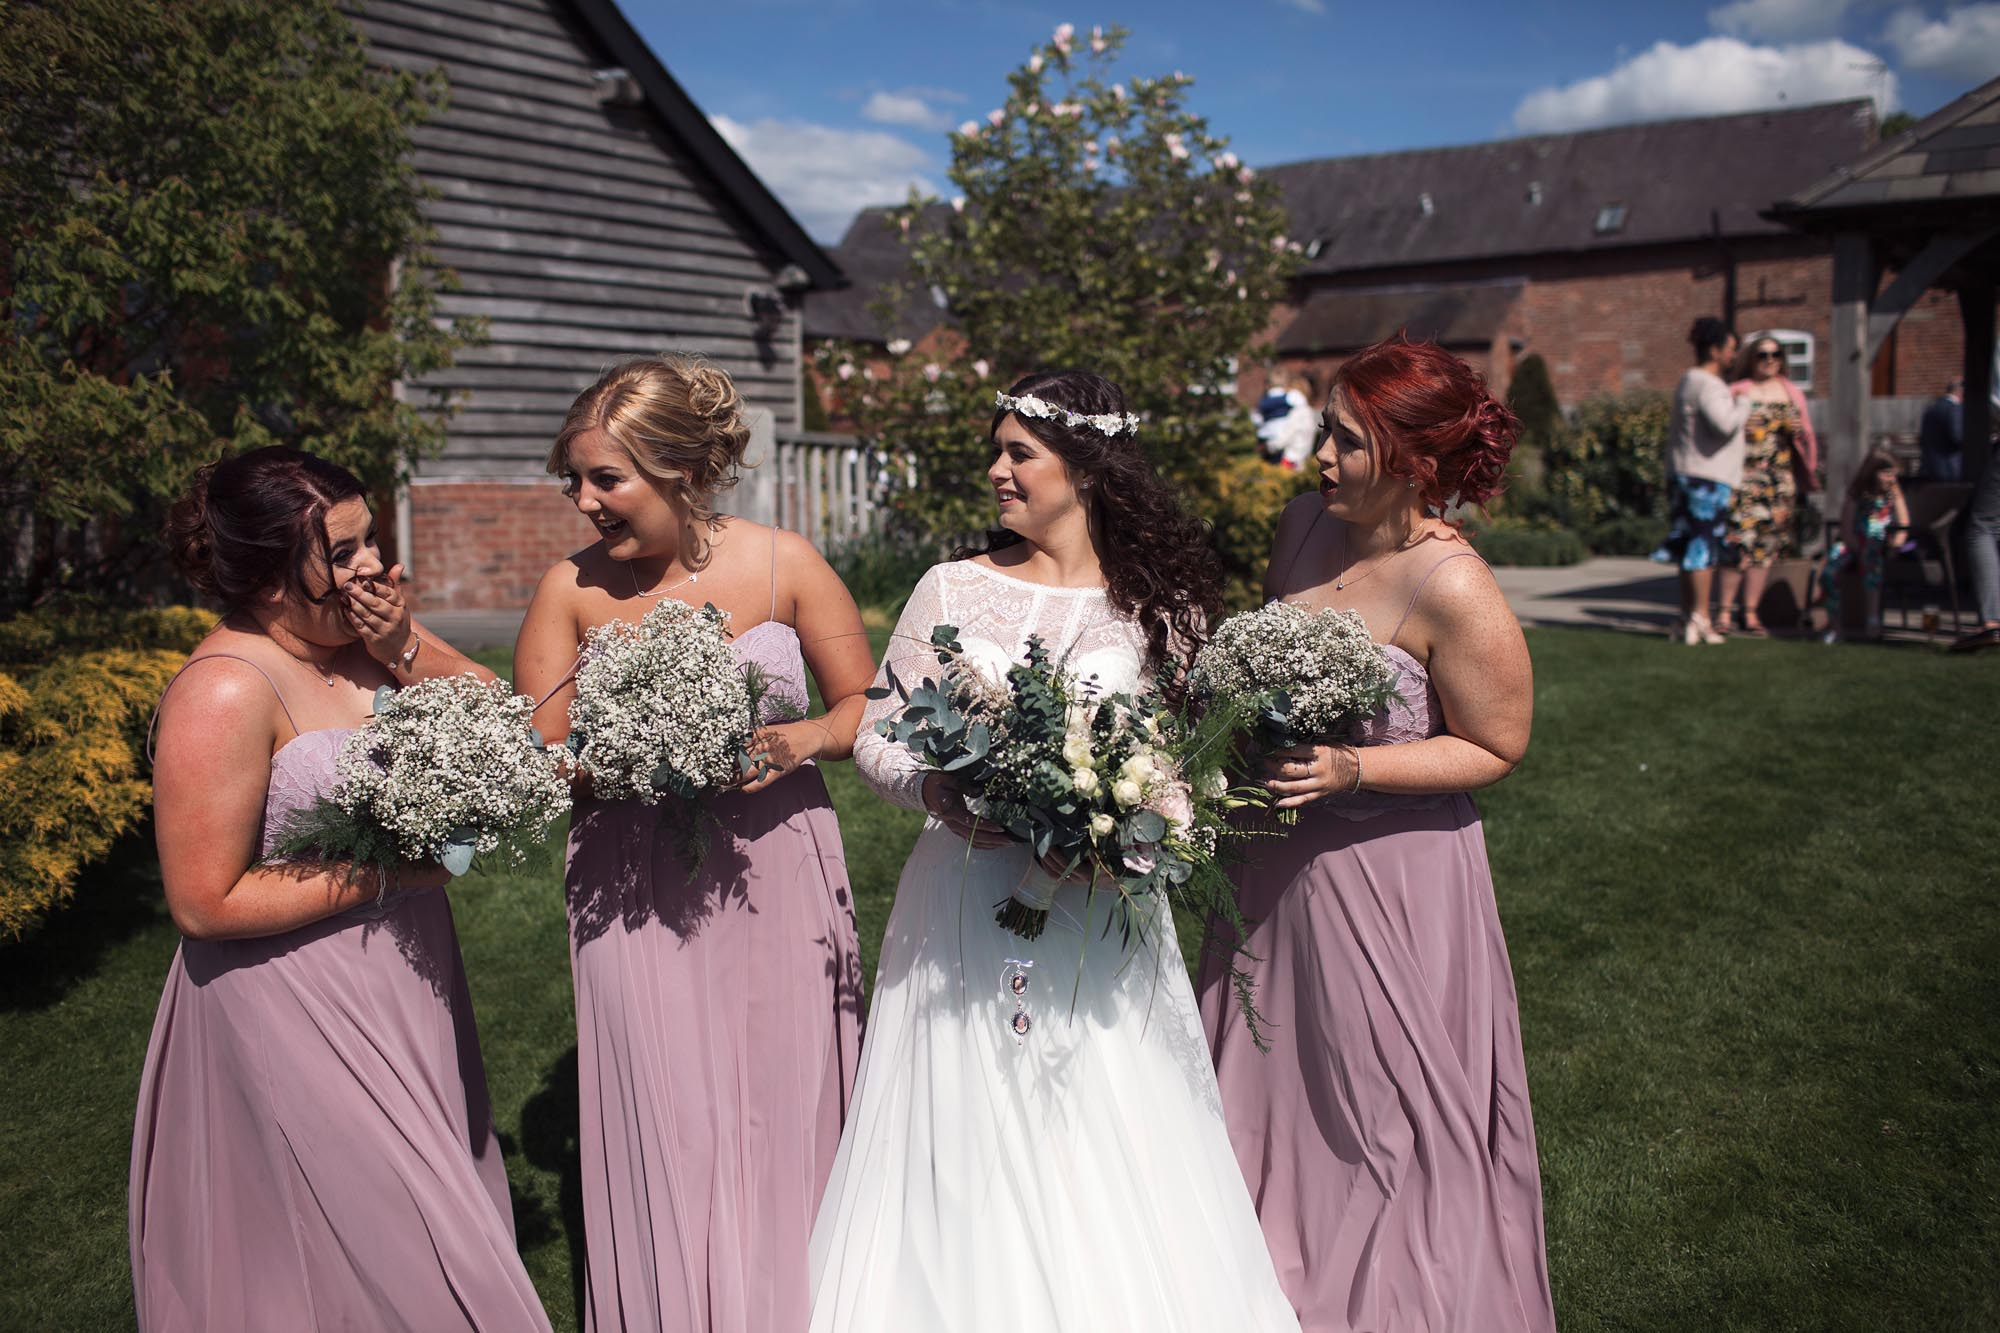 bride and her bridesmaids smiling fun cool laughing wedding happy